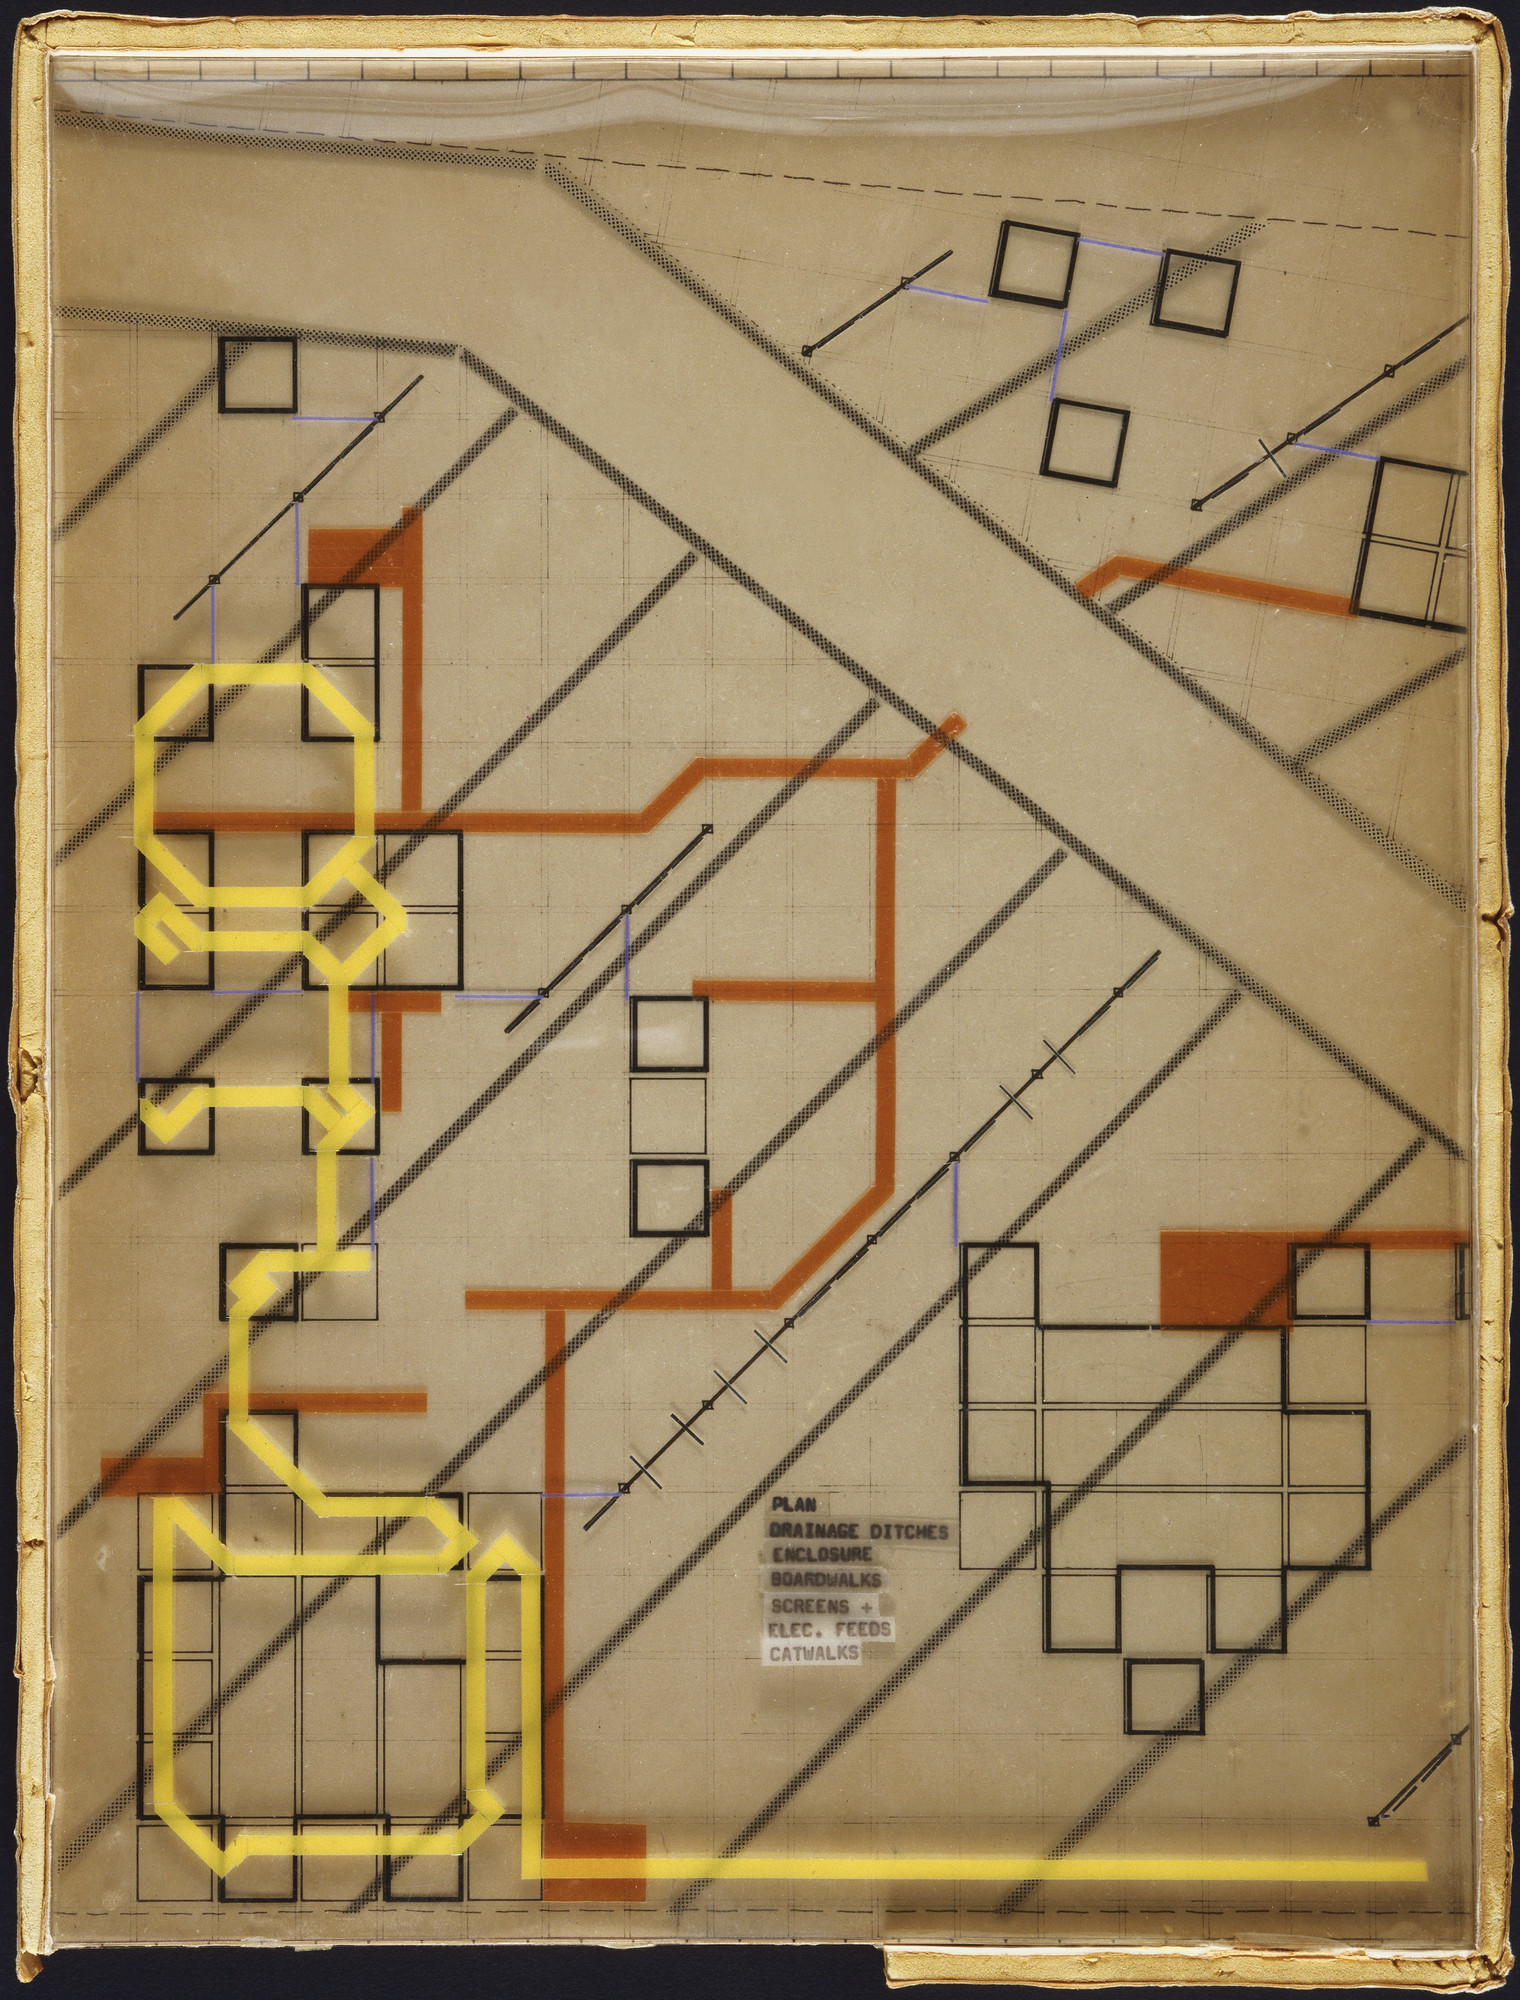 Cedric Price. Generator Project, White Oak, Florida, Plan of Service and Structure with Key. 1978-80